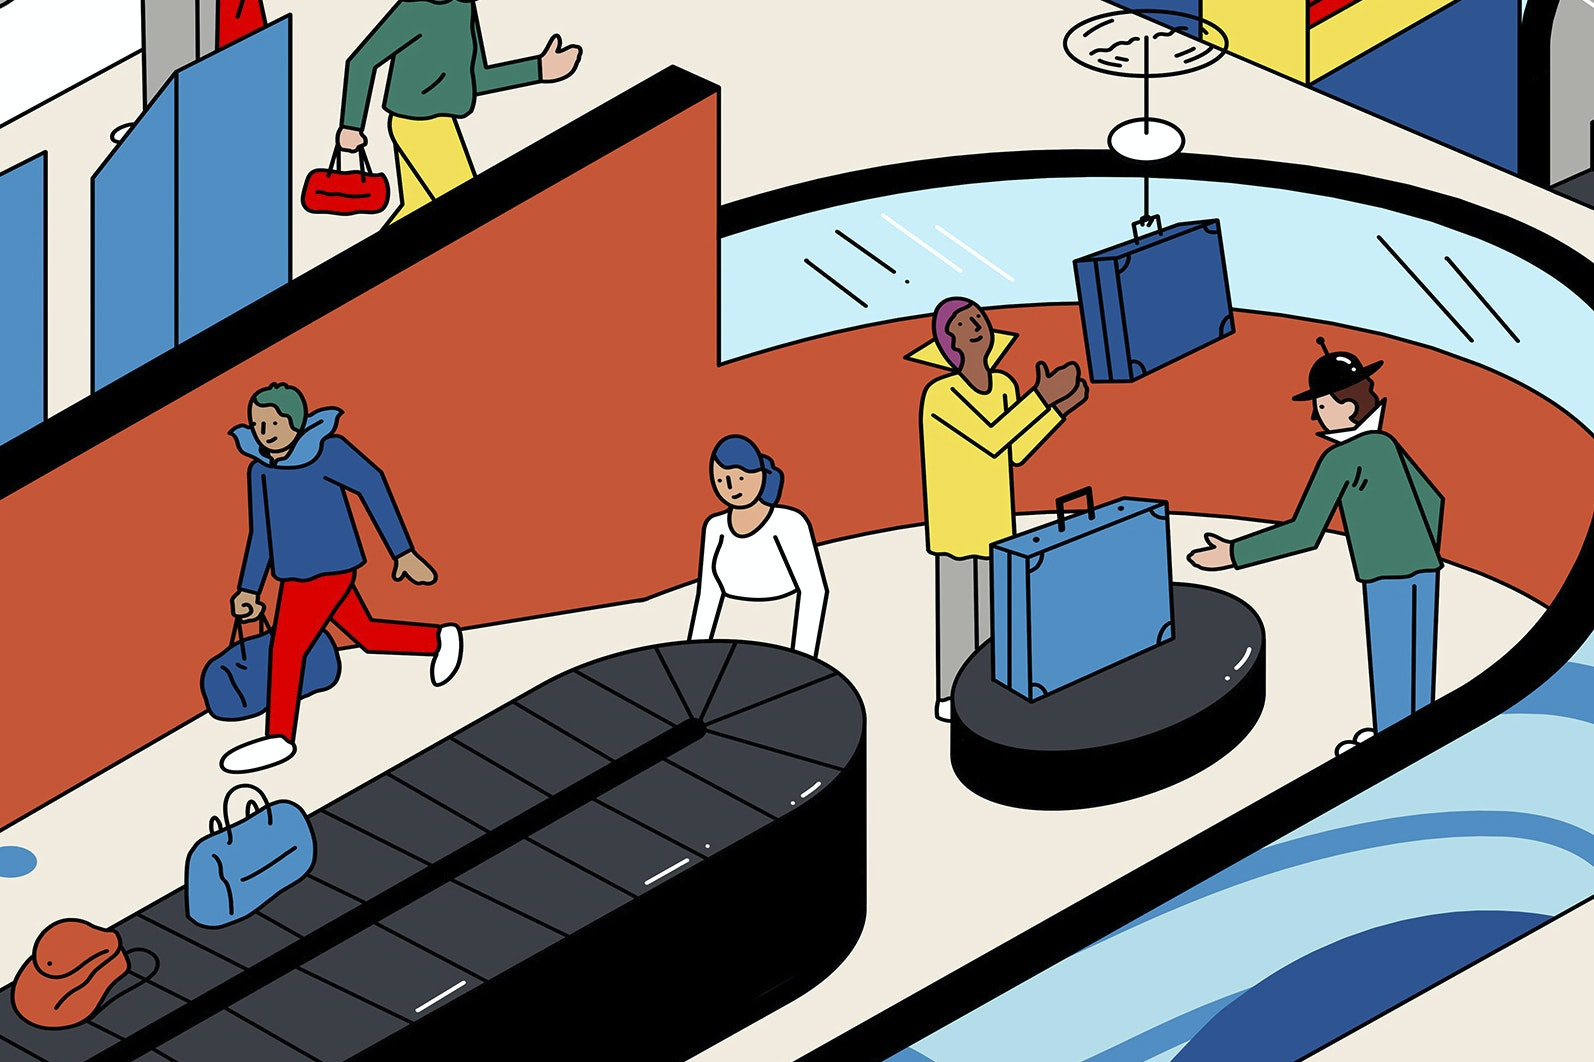 Radio-frequency identification (RFID) tags and monitoring apps to track bags are ensuring fewer lost bags at the airport.